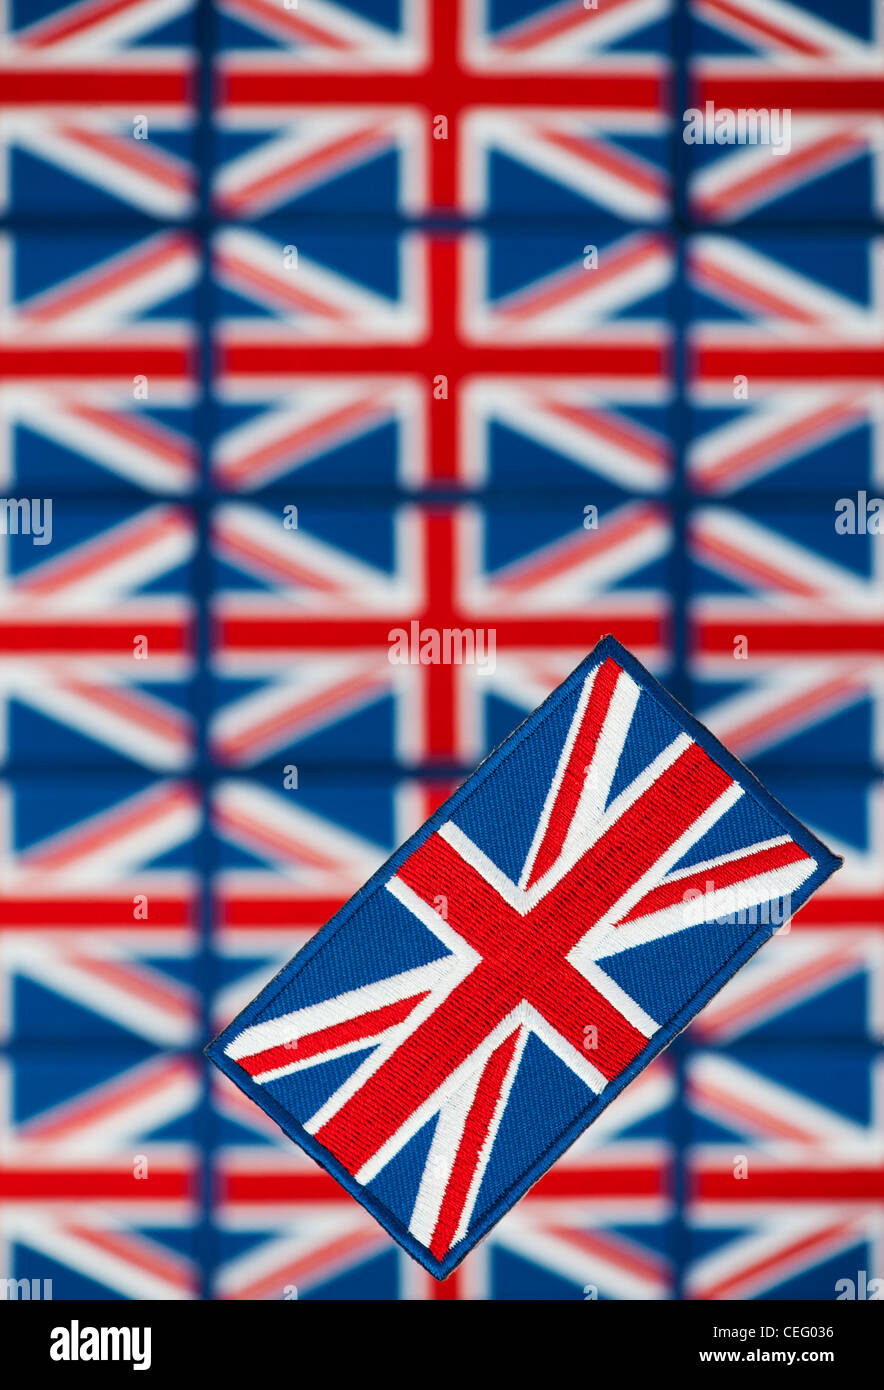 Union Jack flag embroidered patch pattern Stock Photo